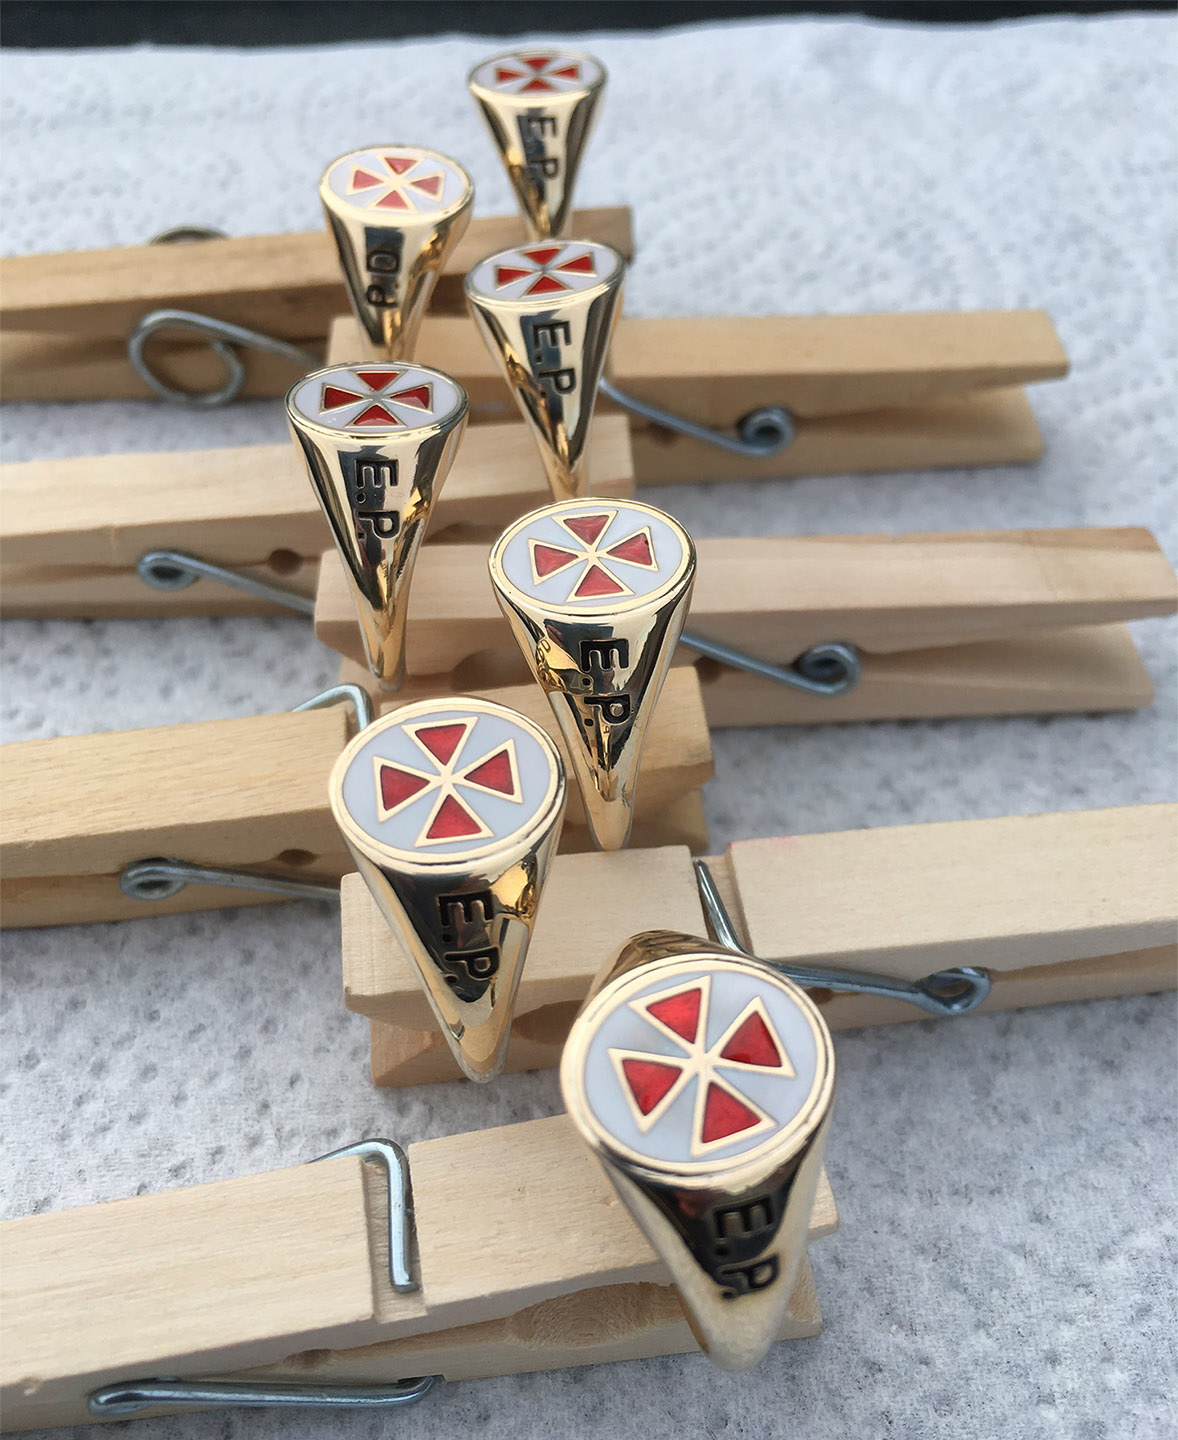 7 x E.R. england gold rings finished